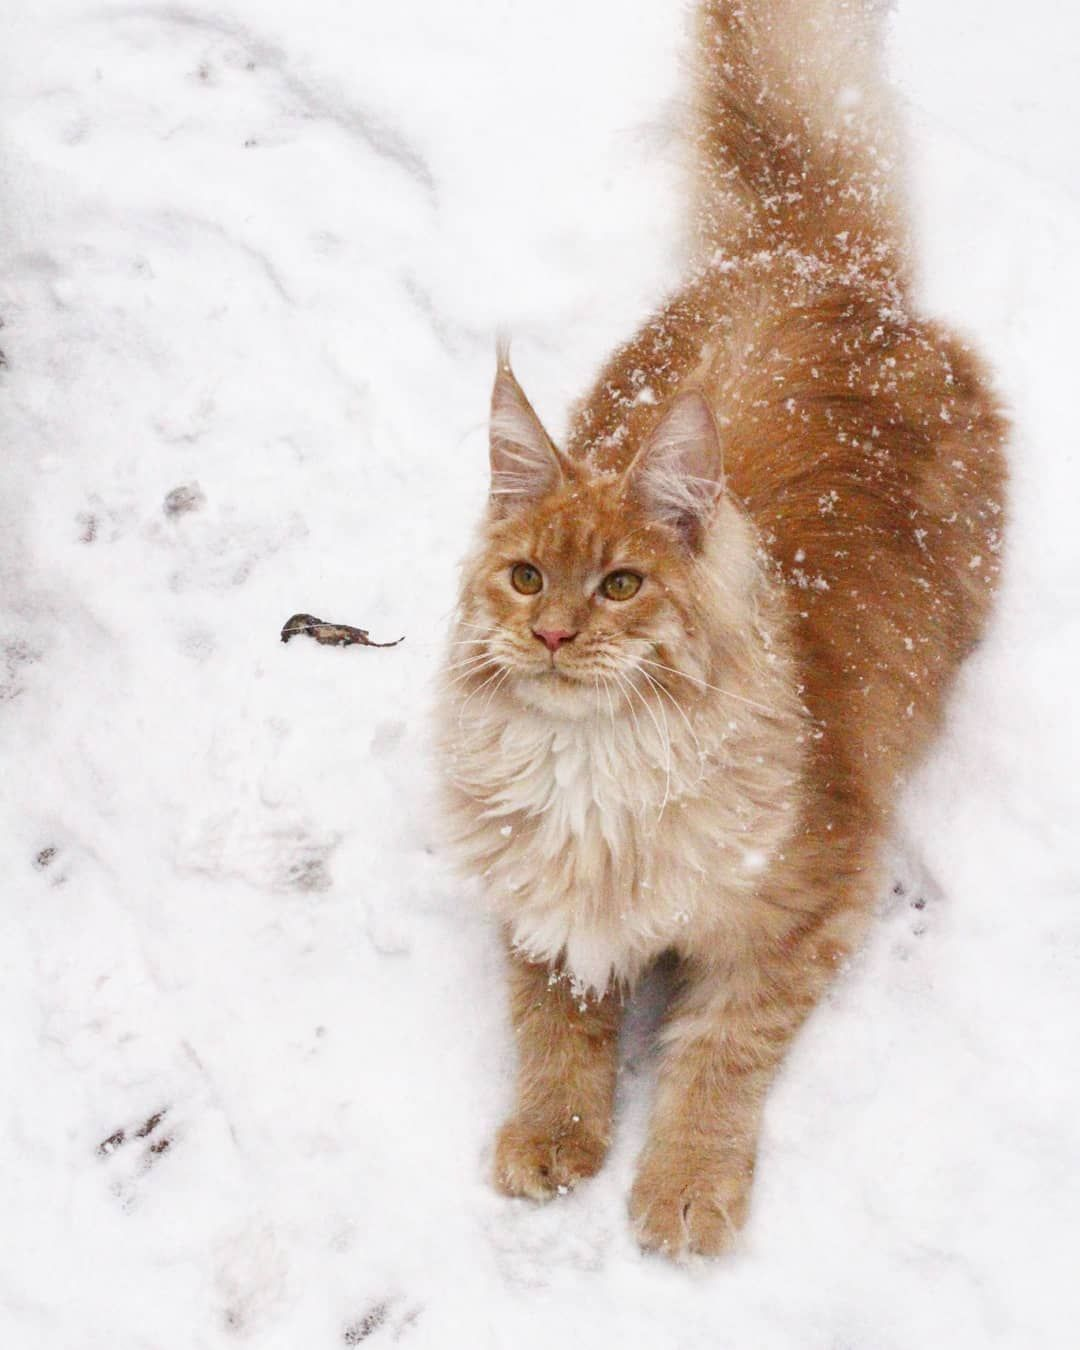 Pin by avrtatiana on maine coon pinterest maine coon siberian cat prettiest cat pretty cats maine coon cats big cats adorable animals merida random things kittens geenschuldenfo Images